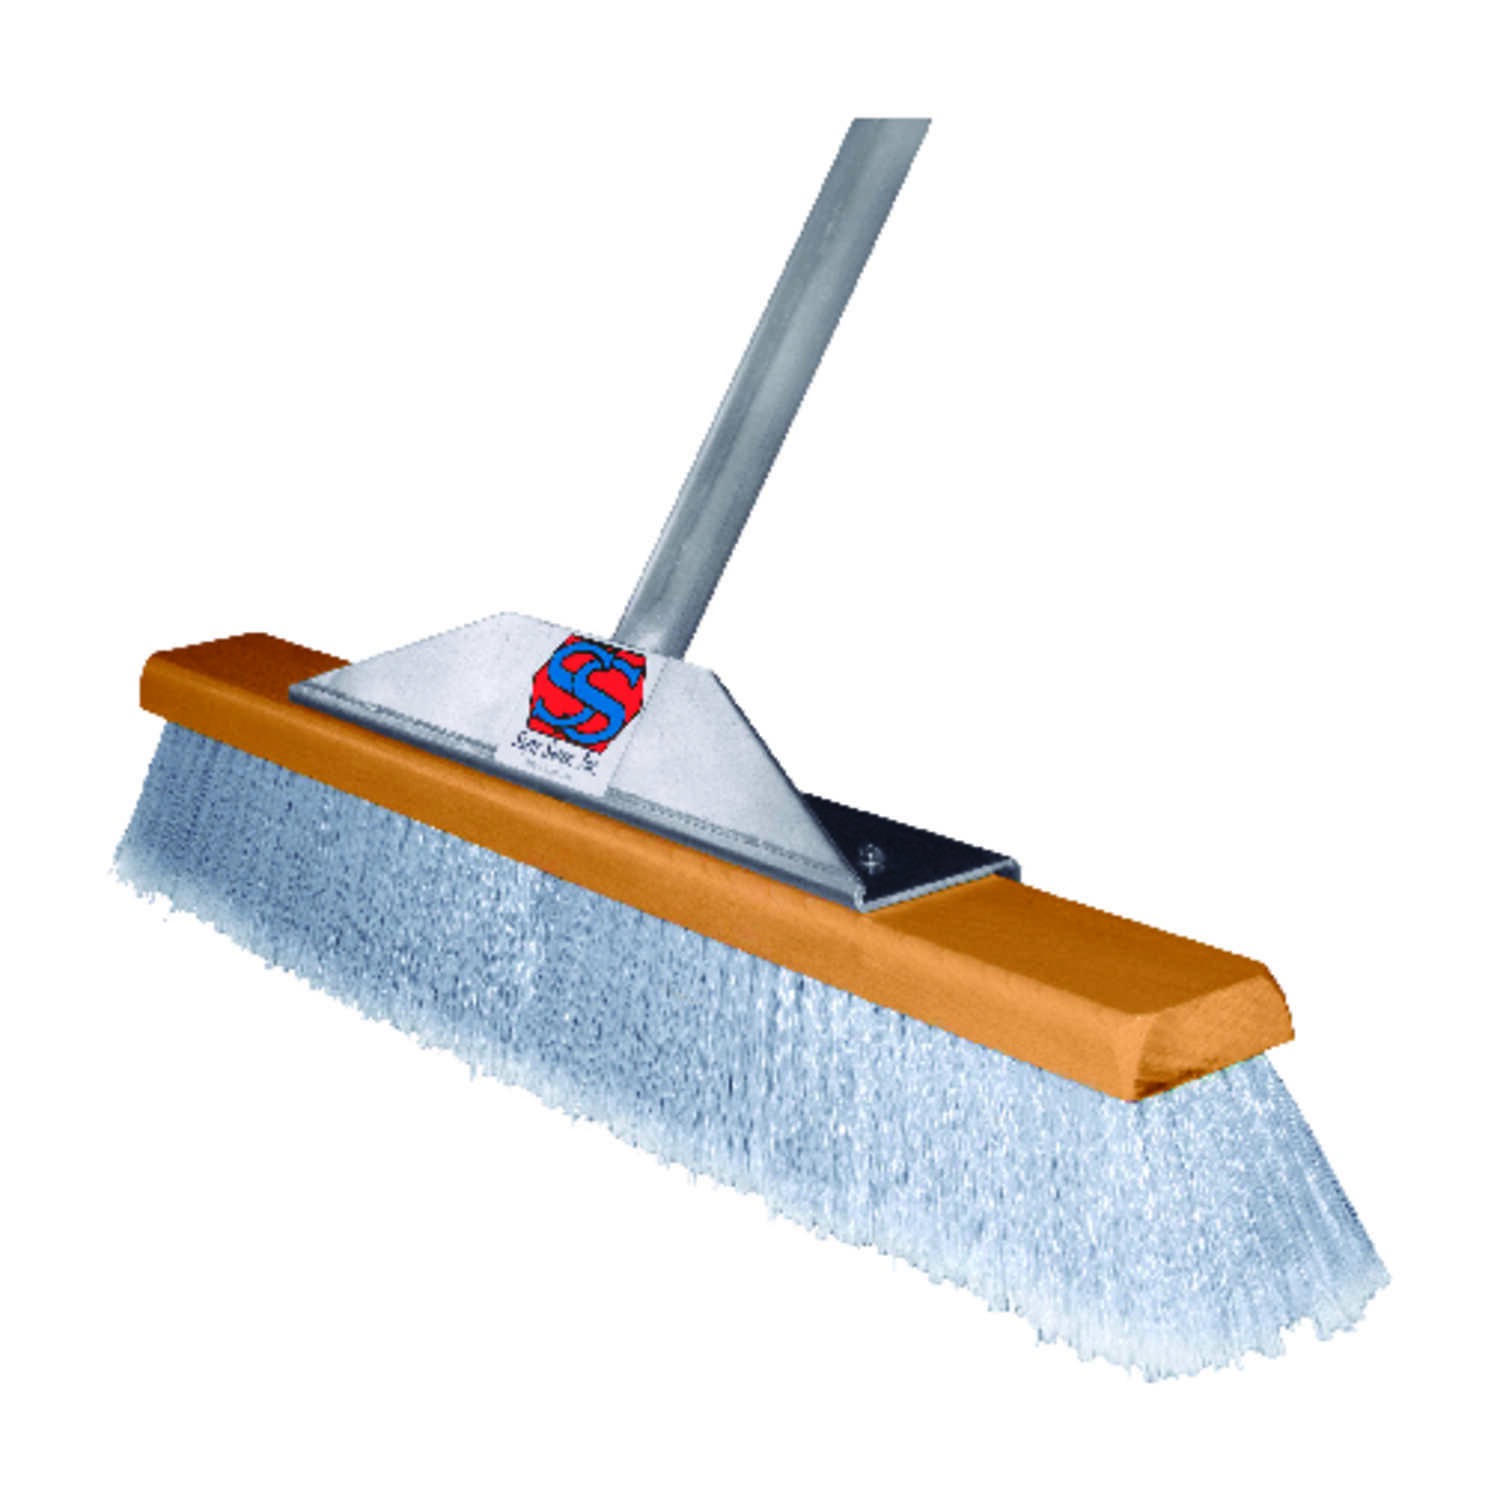 the super sweeper smooth surface push broom 24 in w x 60 in l synthetic ace hardware. Black Bedroom Furniture Sets. Home Design Ideas